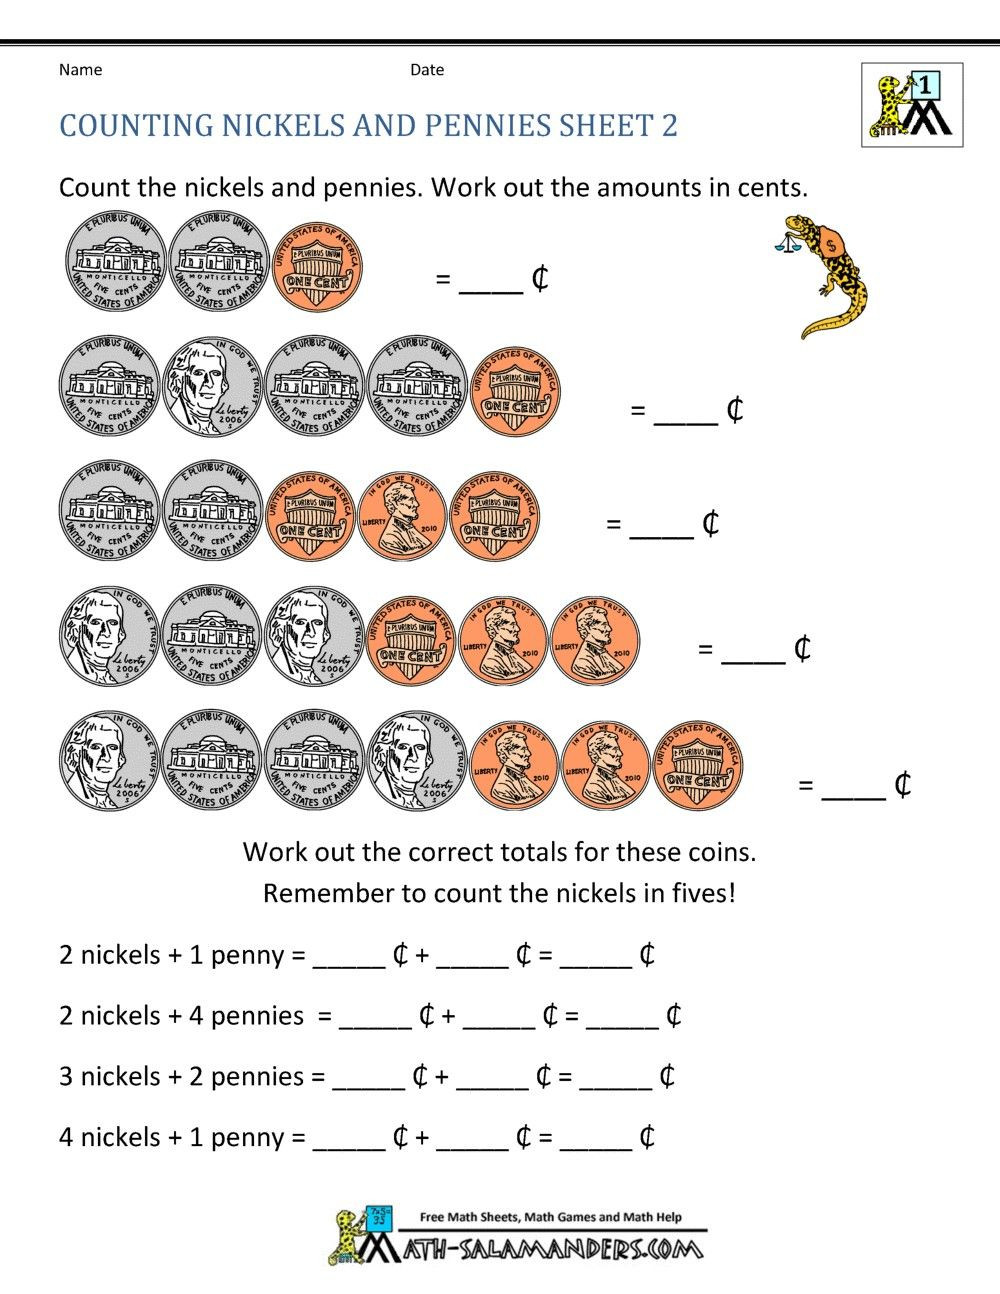 Money Worksheets for 3rd Grade 4 Free Math Worksheets Third Grade 3 Counting Money Math